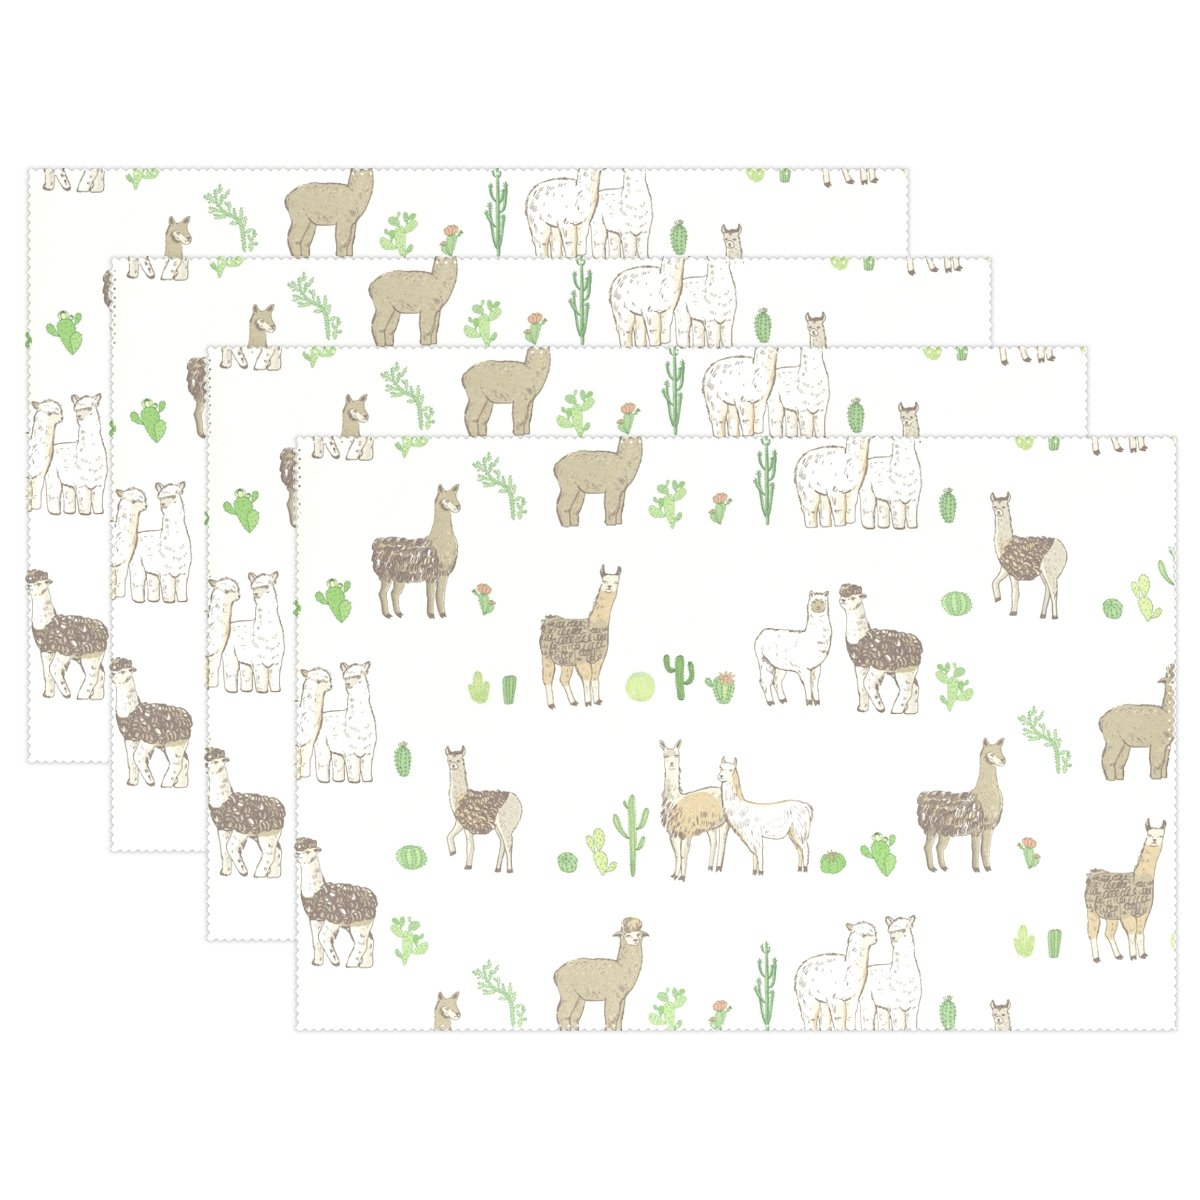 Top Carpenter Funny Lama Animal And Cactus Place Mats Washable Heat Resistant Polyester Table Mats 12'' x 18'', Set of 4